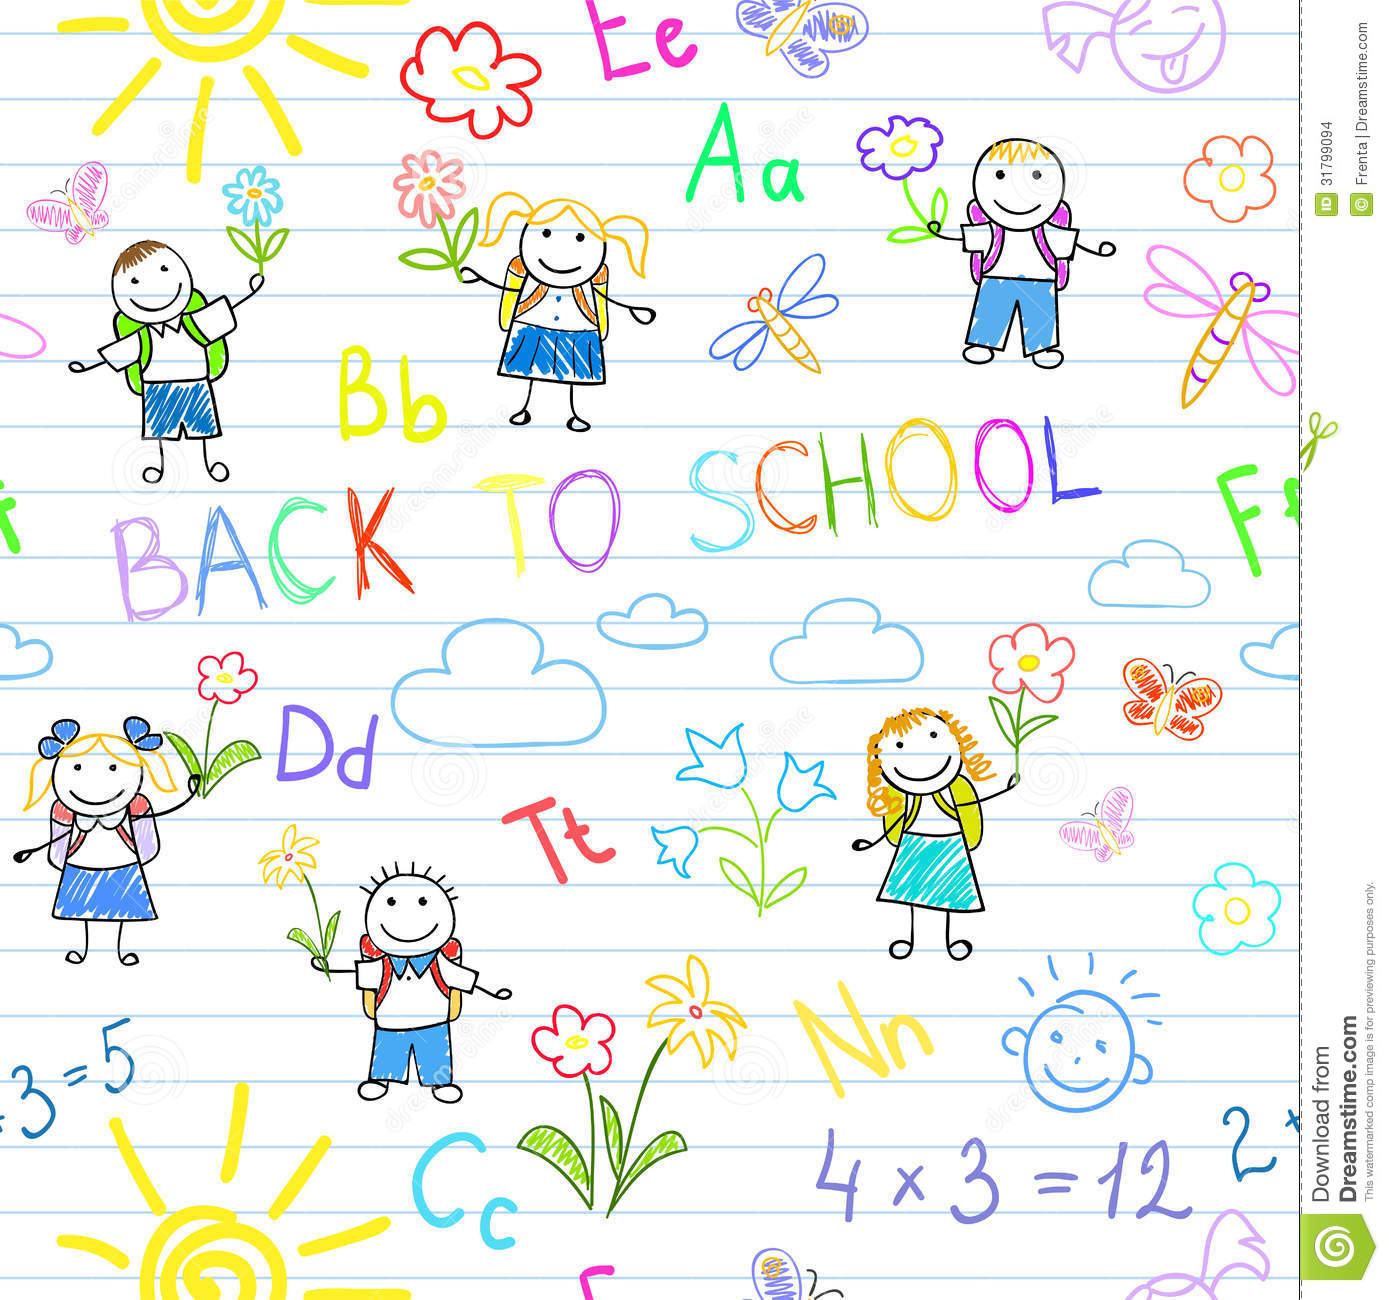 Back To School Backgrounds Back to school stock images 1389x1300